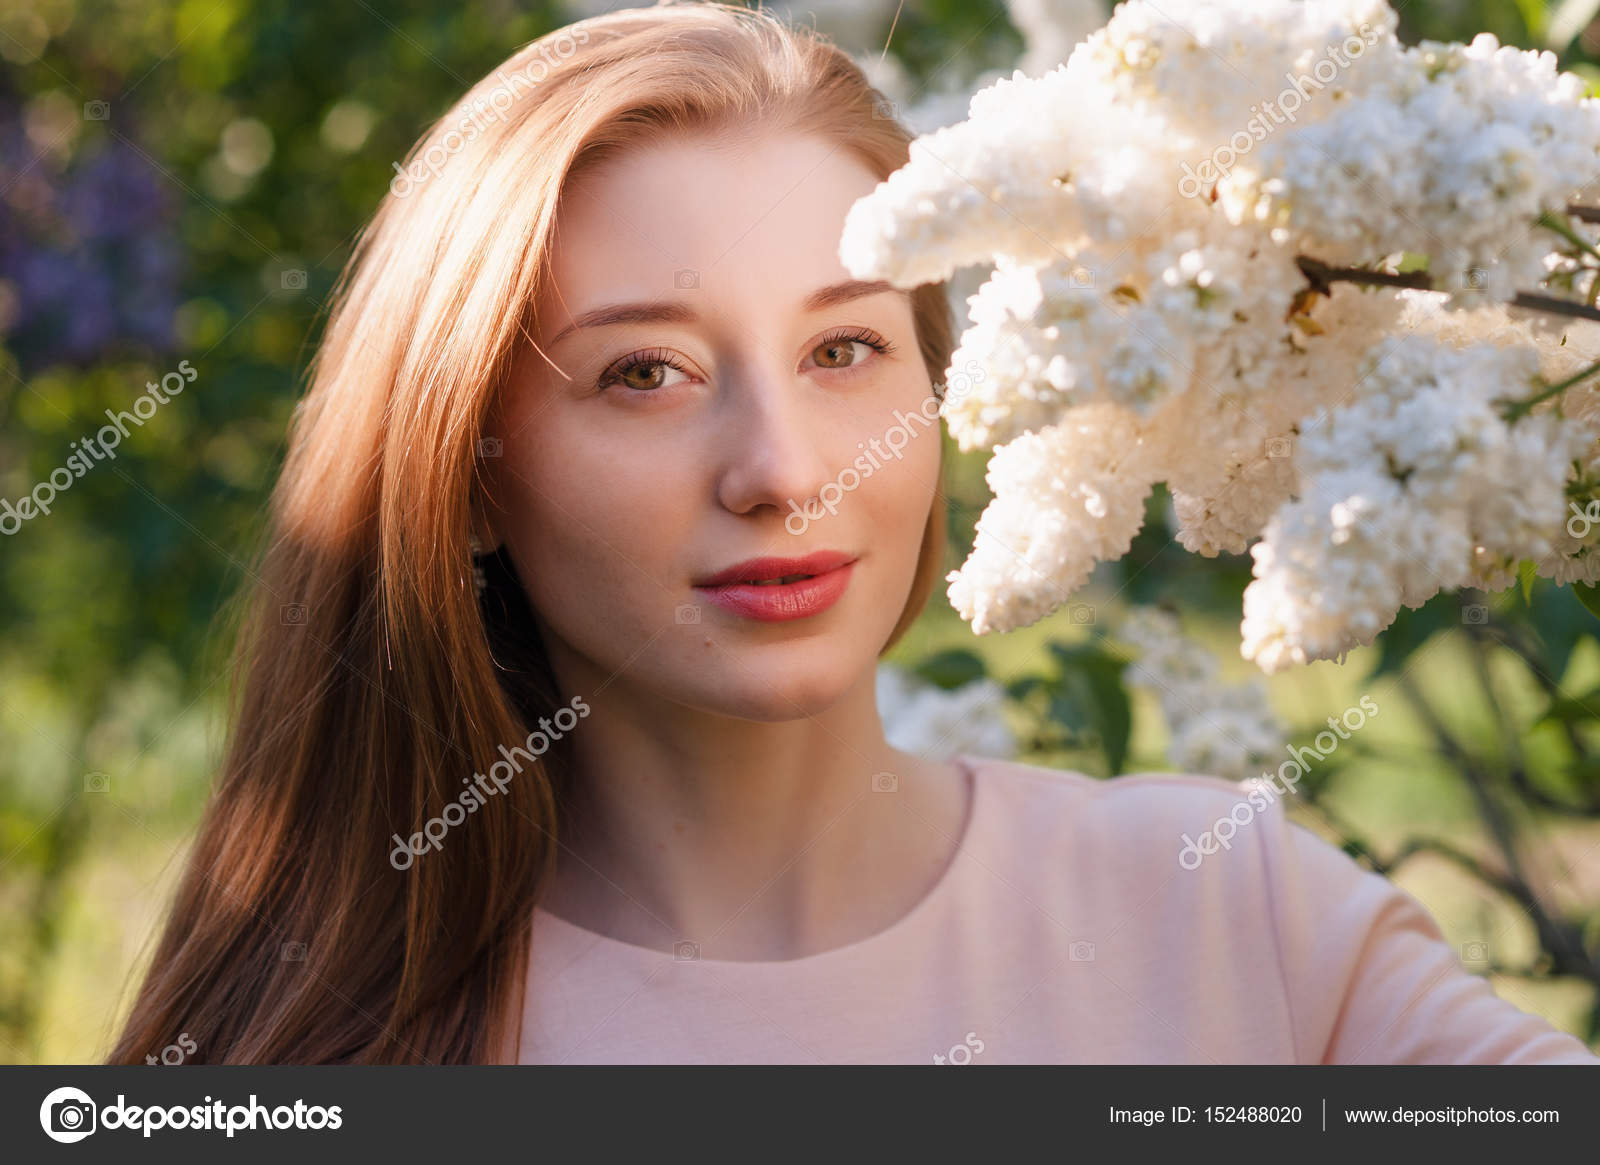 Beautiful woman with flowers of lilac skincare stock photo beautiful woman with flowers of lilac skincare stock photo izmirmasajfo Image collections